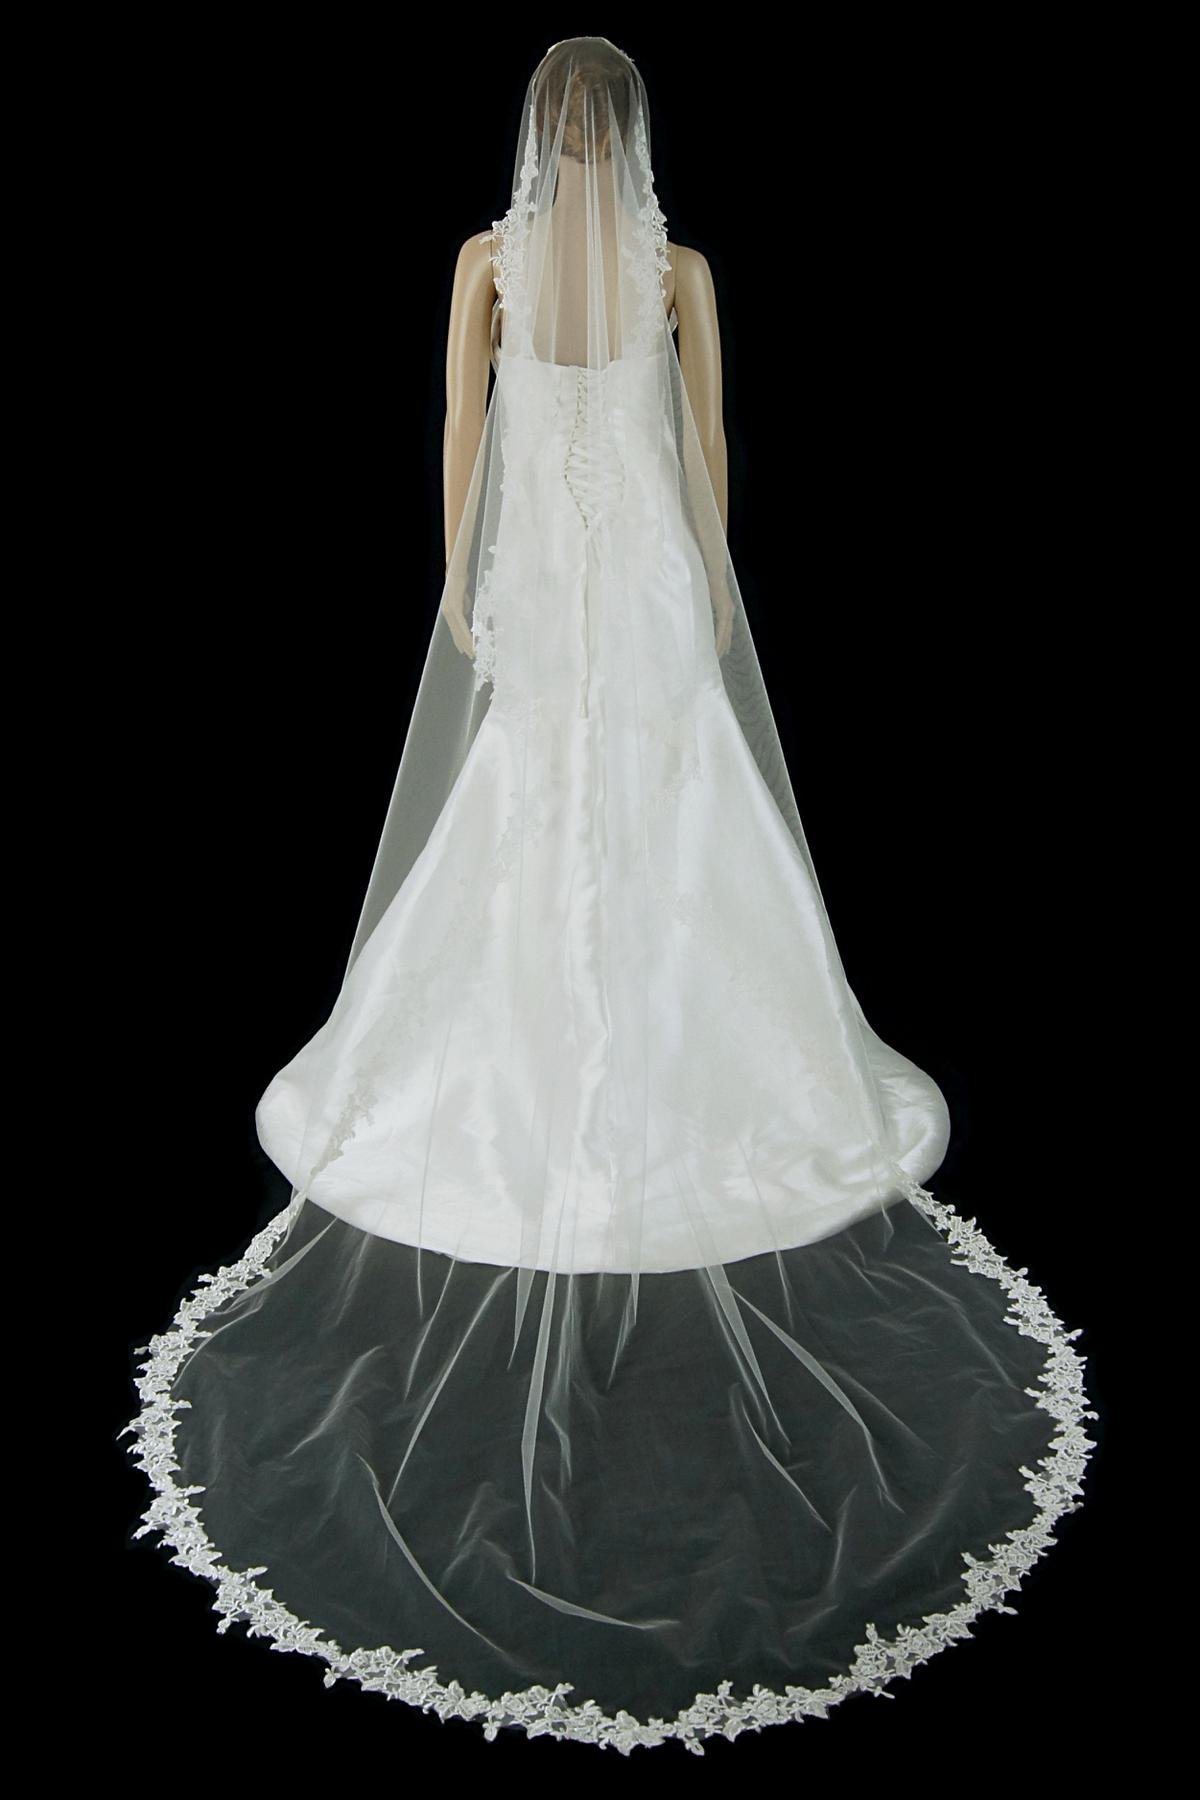 Bridal Mantilla Veil Ivory 1 Tier Long Cathedral Length With Simple Lace Edge by Velvet Bridal (Image #4)